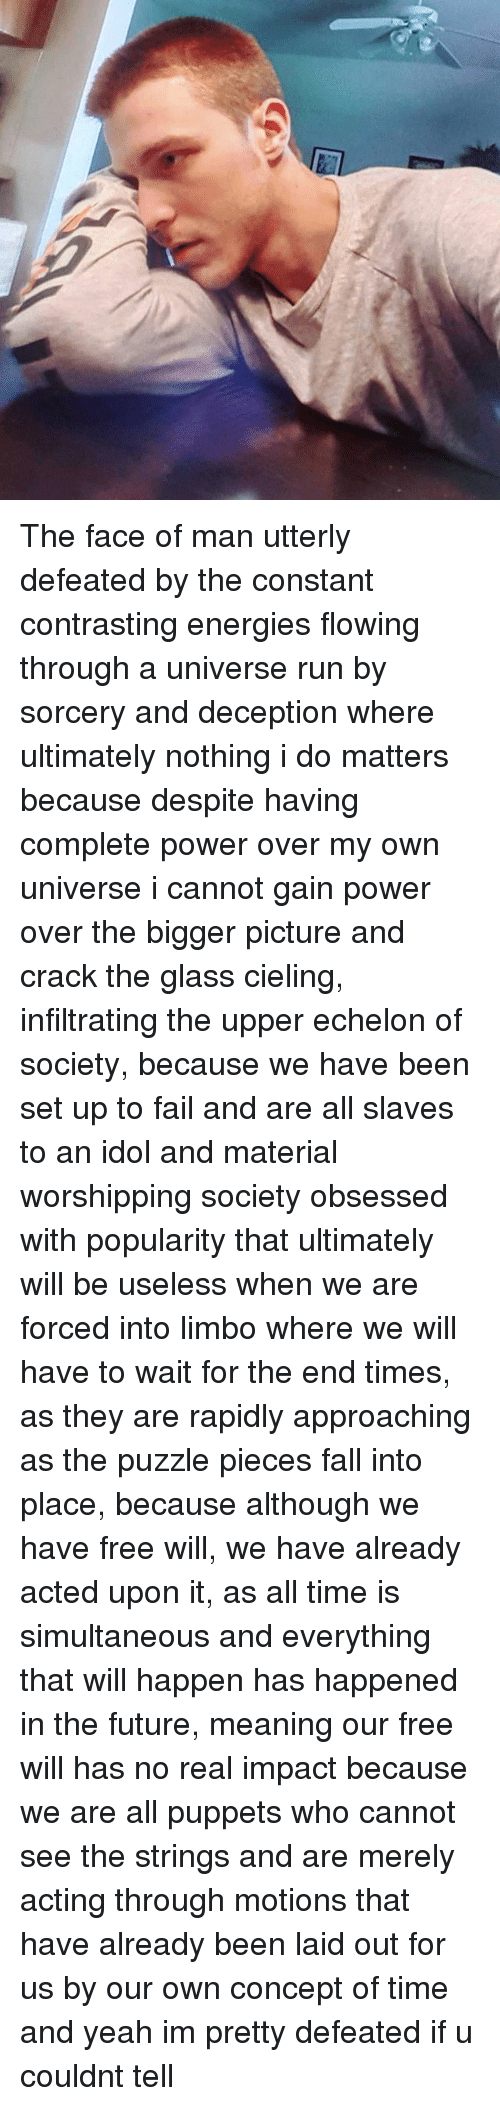 power gained by deception Deception is used to gain power power can change people in a way that is incomprehensible power can make one so greedy that they will do anything for it and won't.